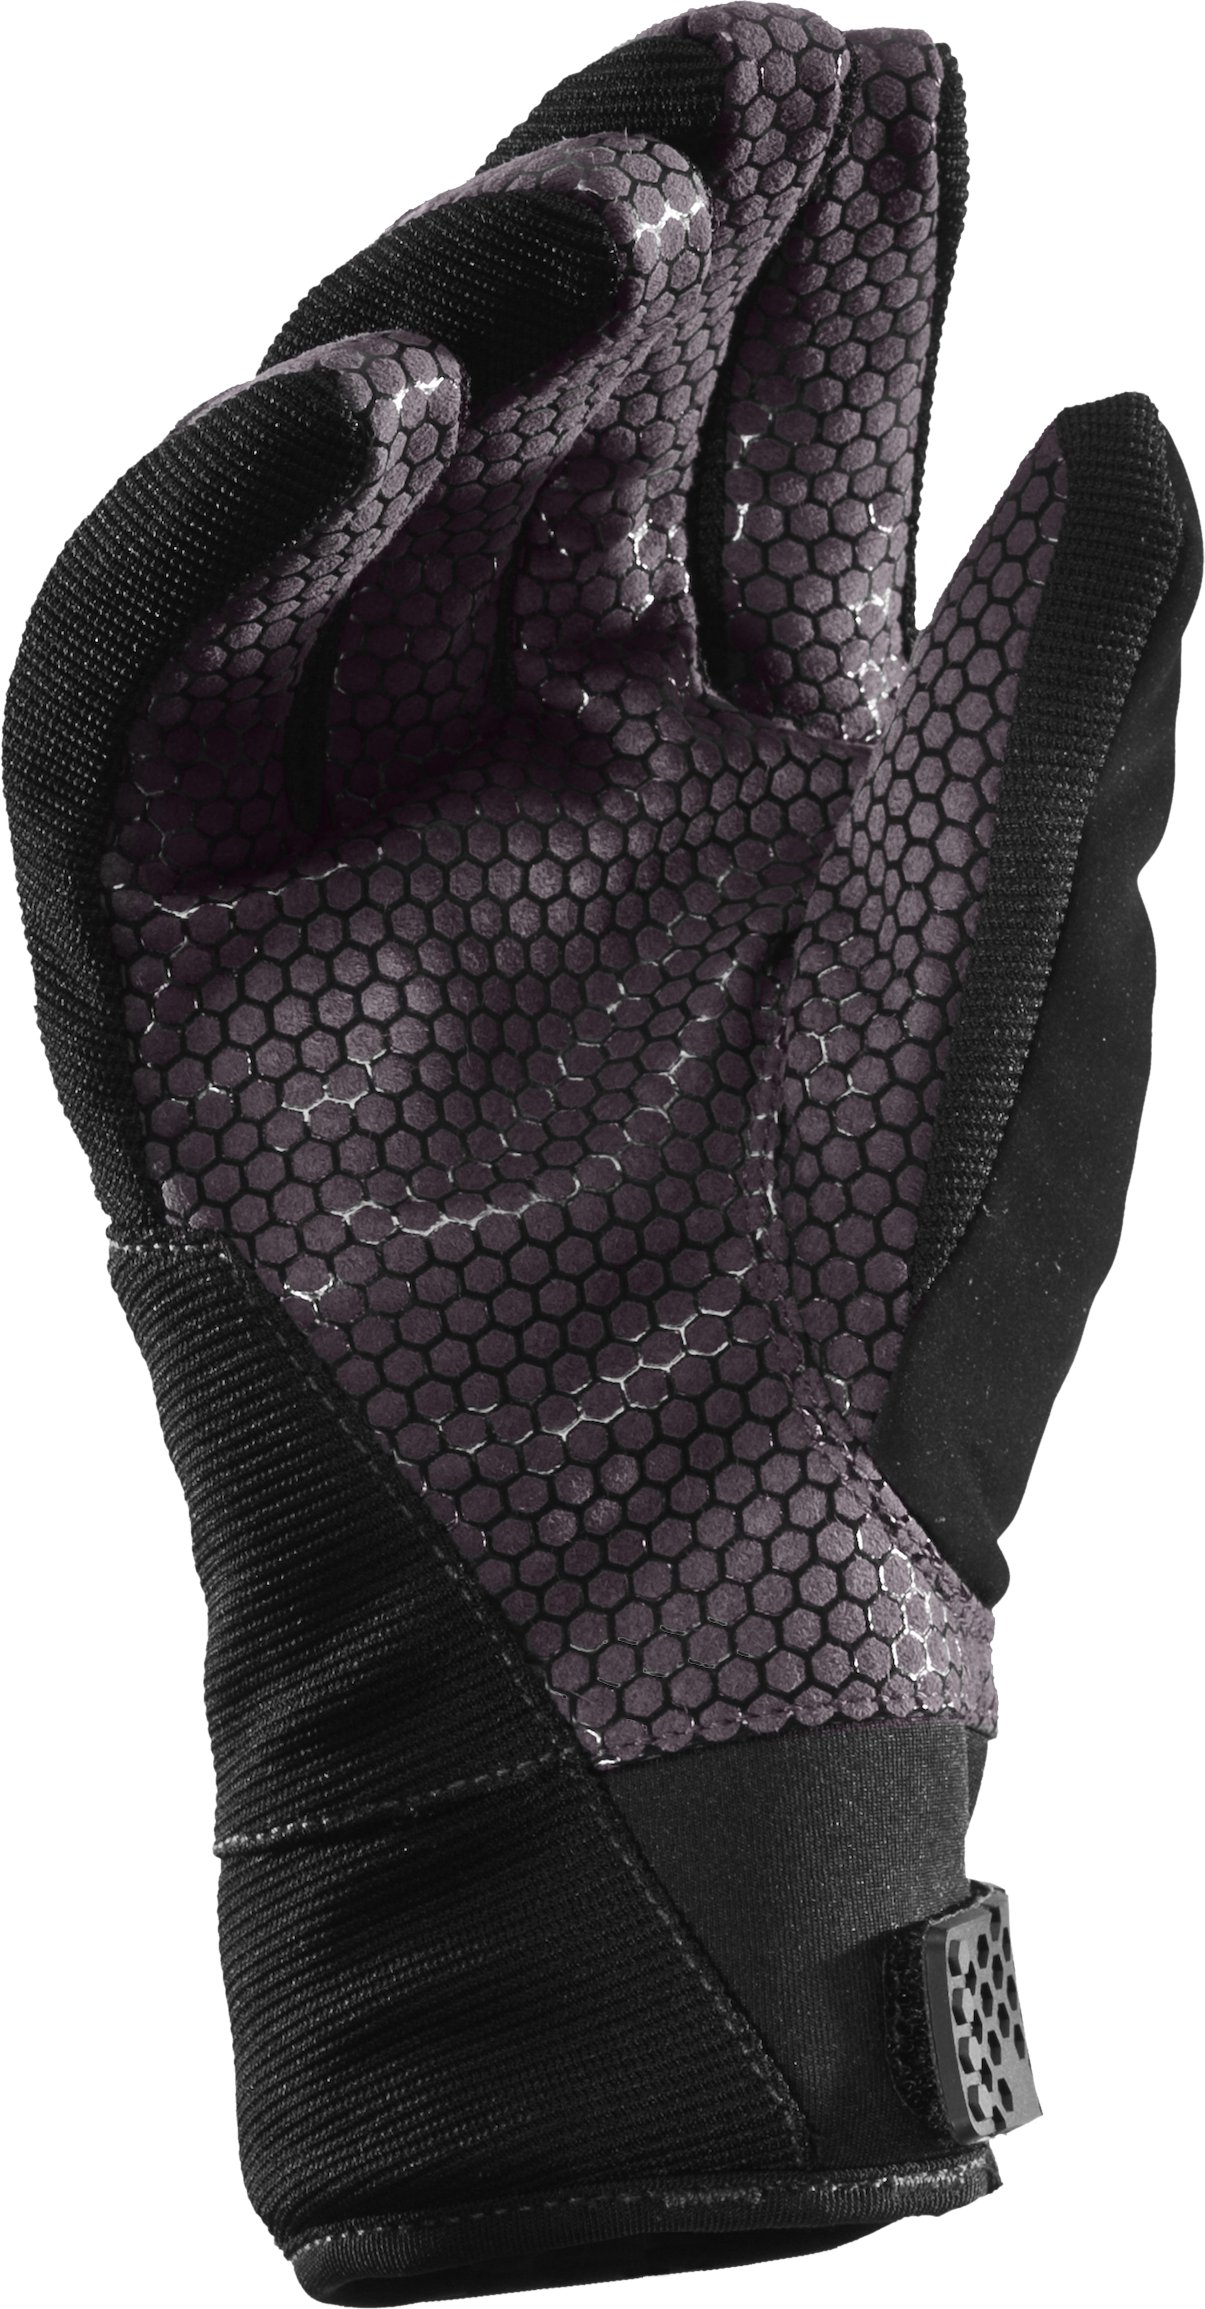 Men's Jonesy II Winter Sports Gloves, Black